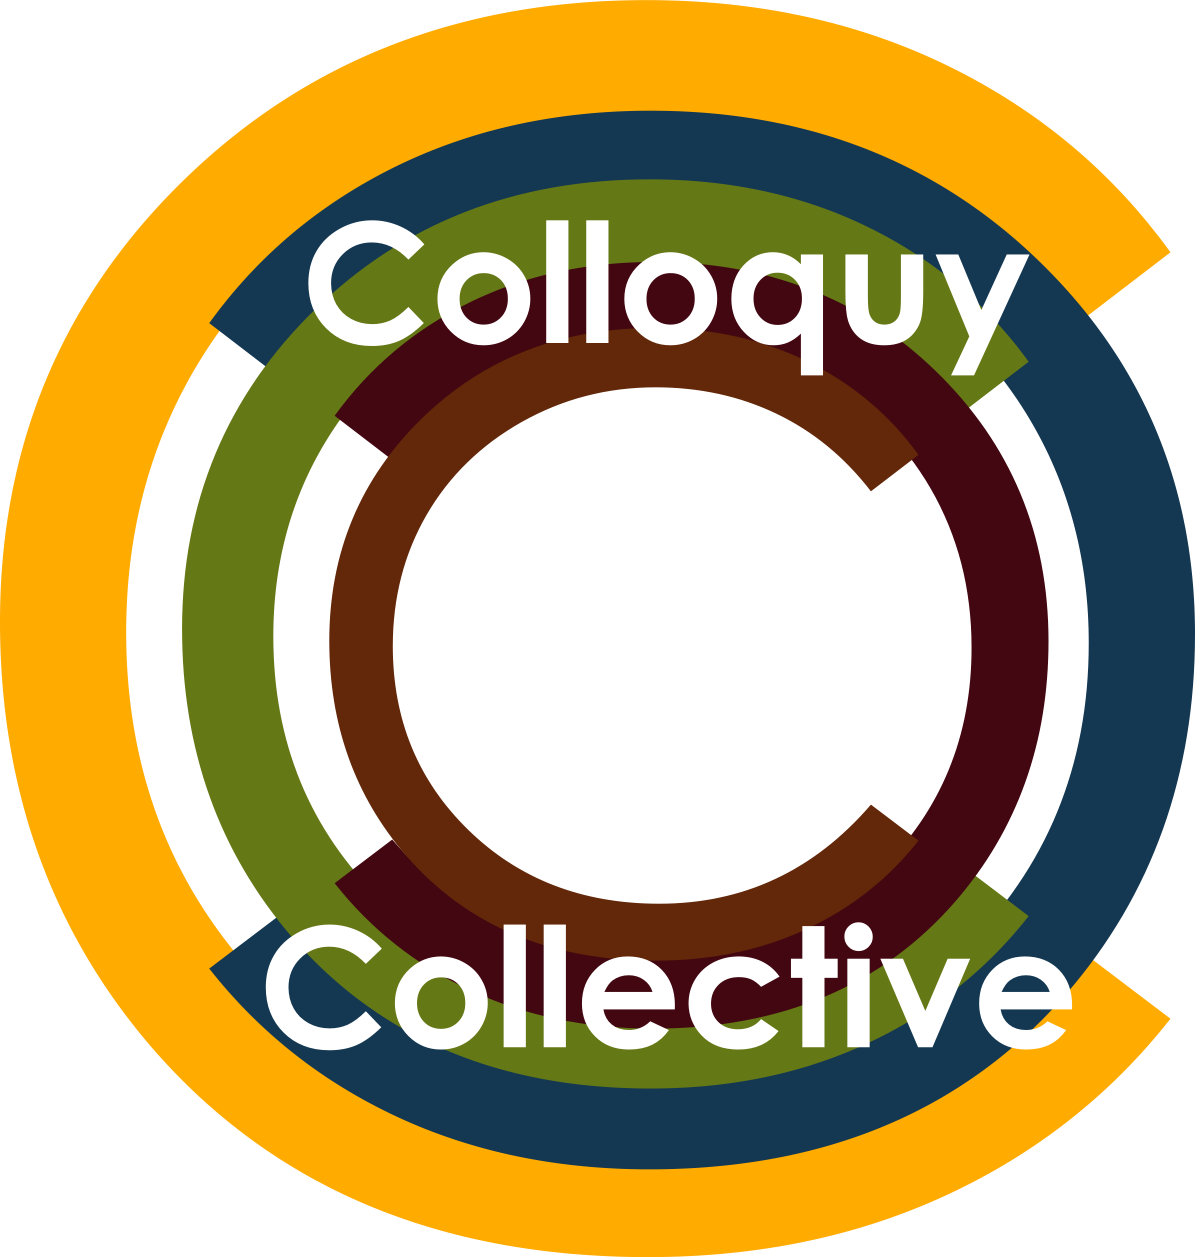 Supporters clipart relationship — Colloquy Colloquy Collective Supporters